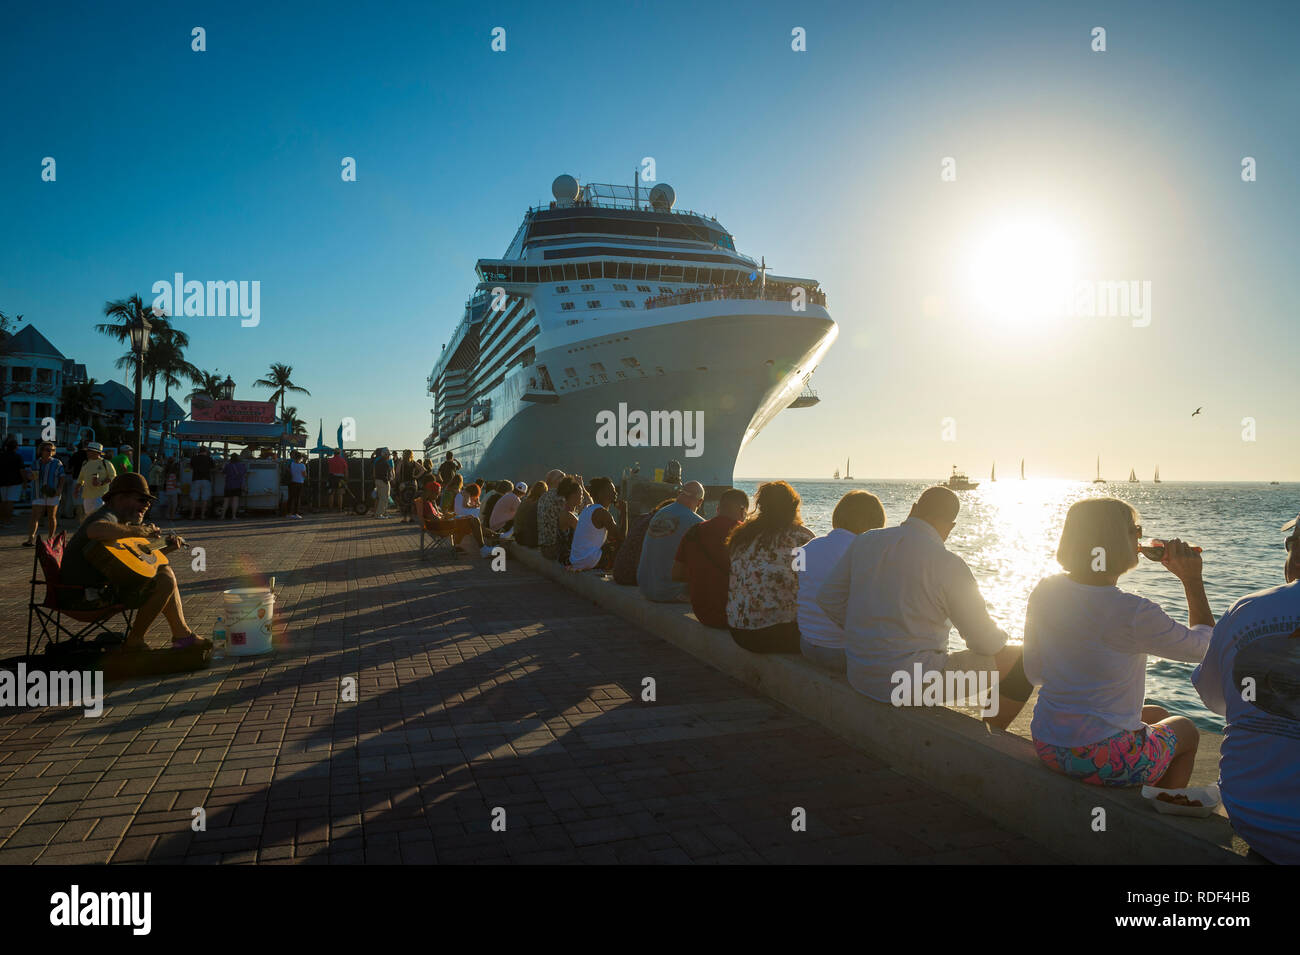 KEY WEST, FLORIDA, USA - JANUARY 13, 2019: Visitors gather under the hulk of a cruise ship at Mallory Square, a bustling tourist destination. - Stock Image